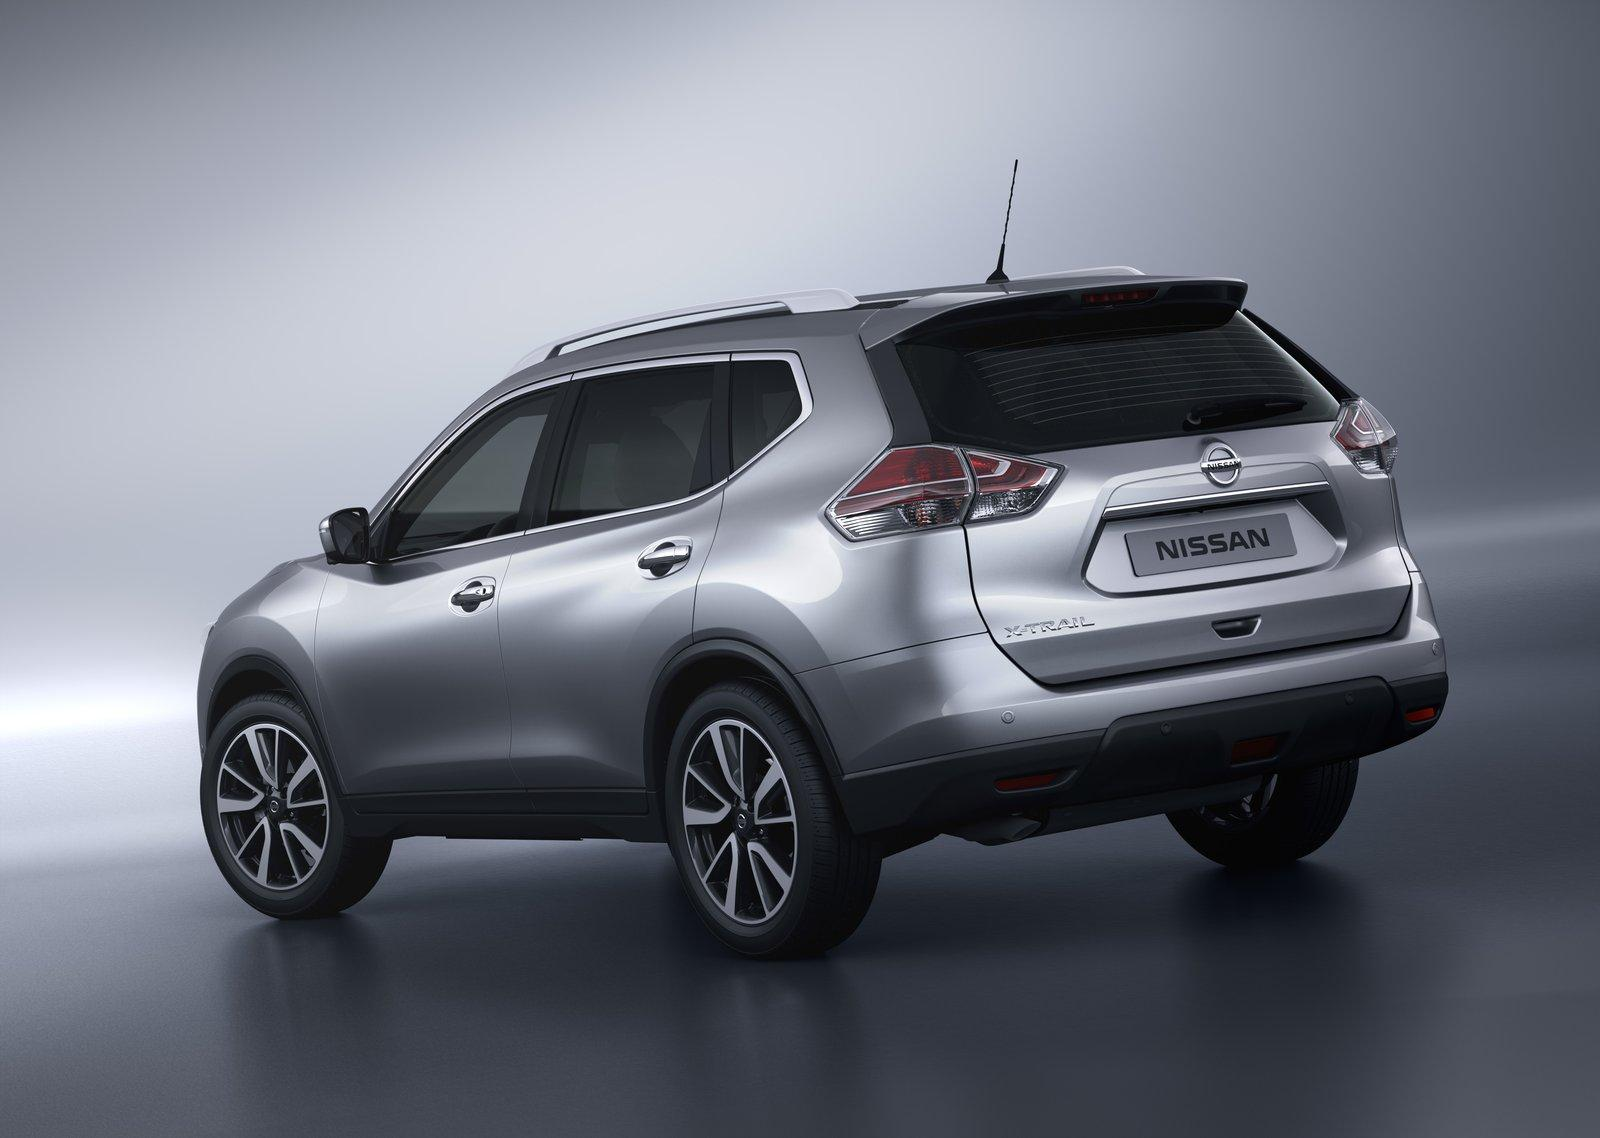 nissan cars news 2014 x trail unveiled. Black Bedroom Furniture Sets. Home Design Ideas